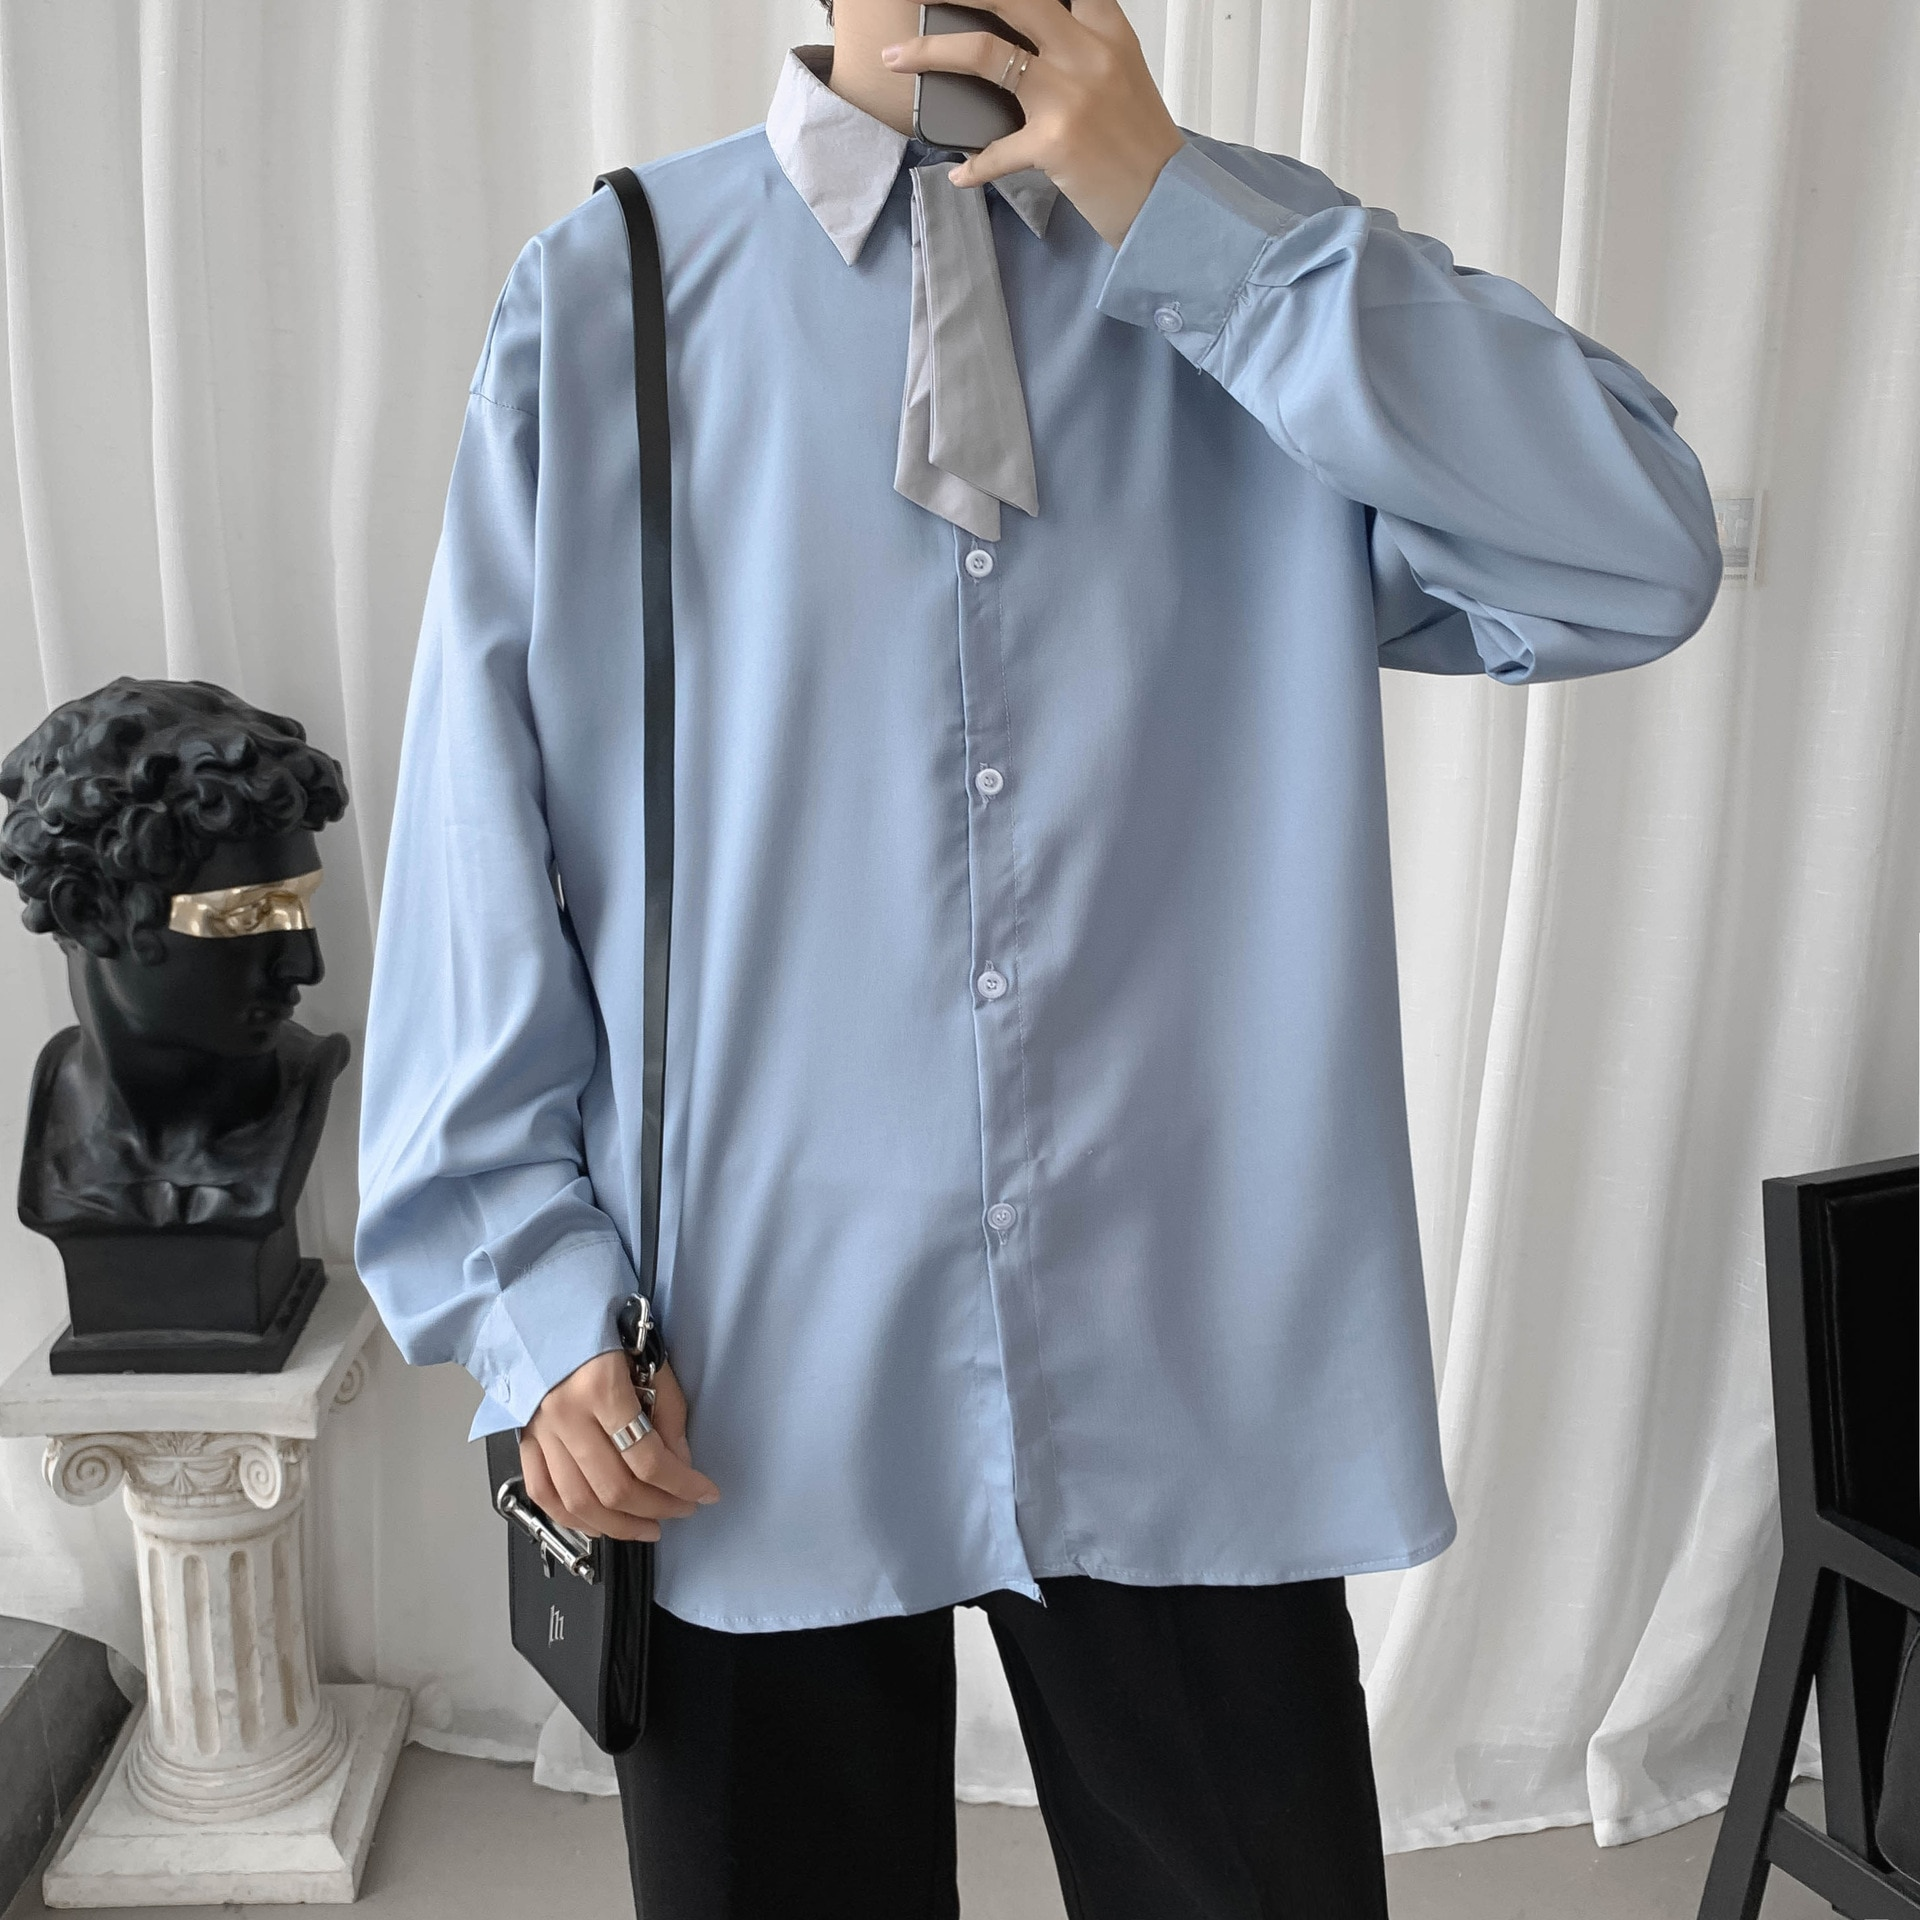 2021 Lapel Long Sleeve Button Streetwear Shirts with Tie Personality Turn-Down Collar Stylish Camisas Male JK Student Shirt